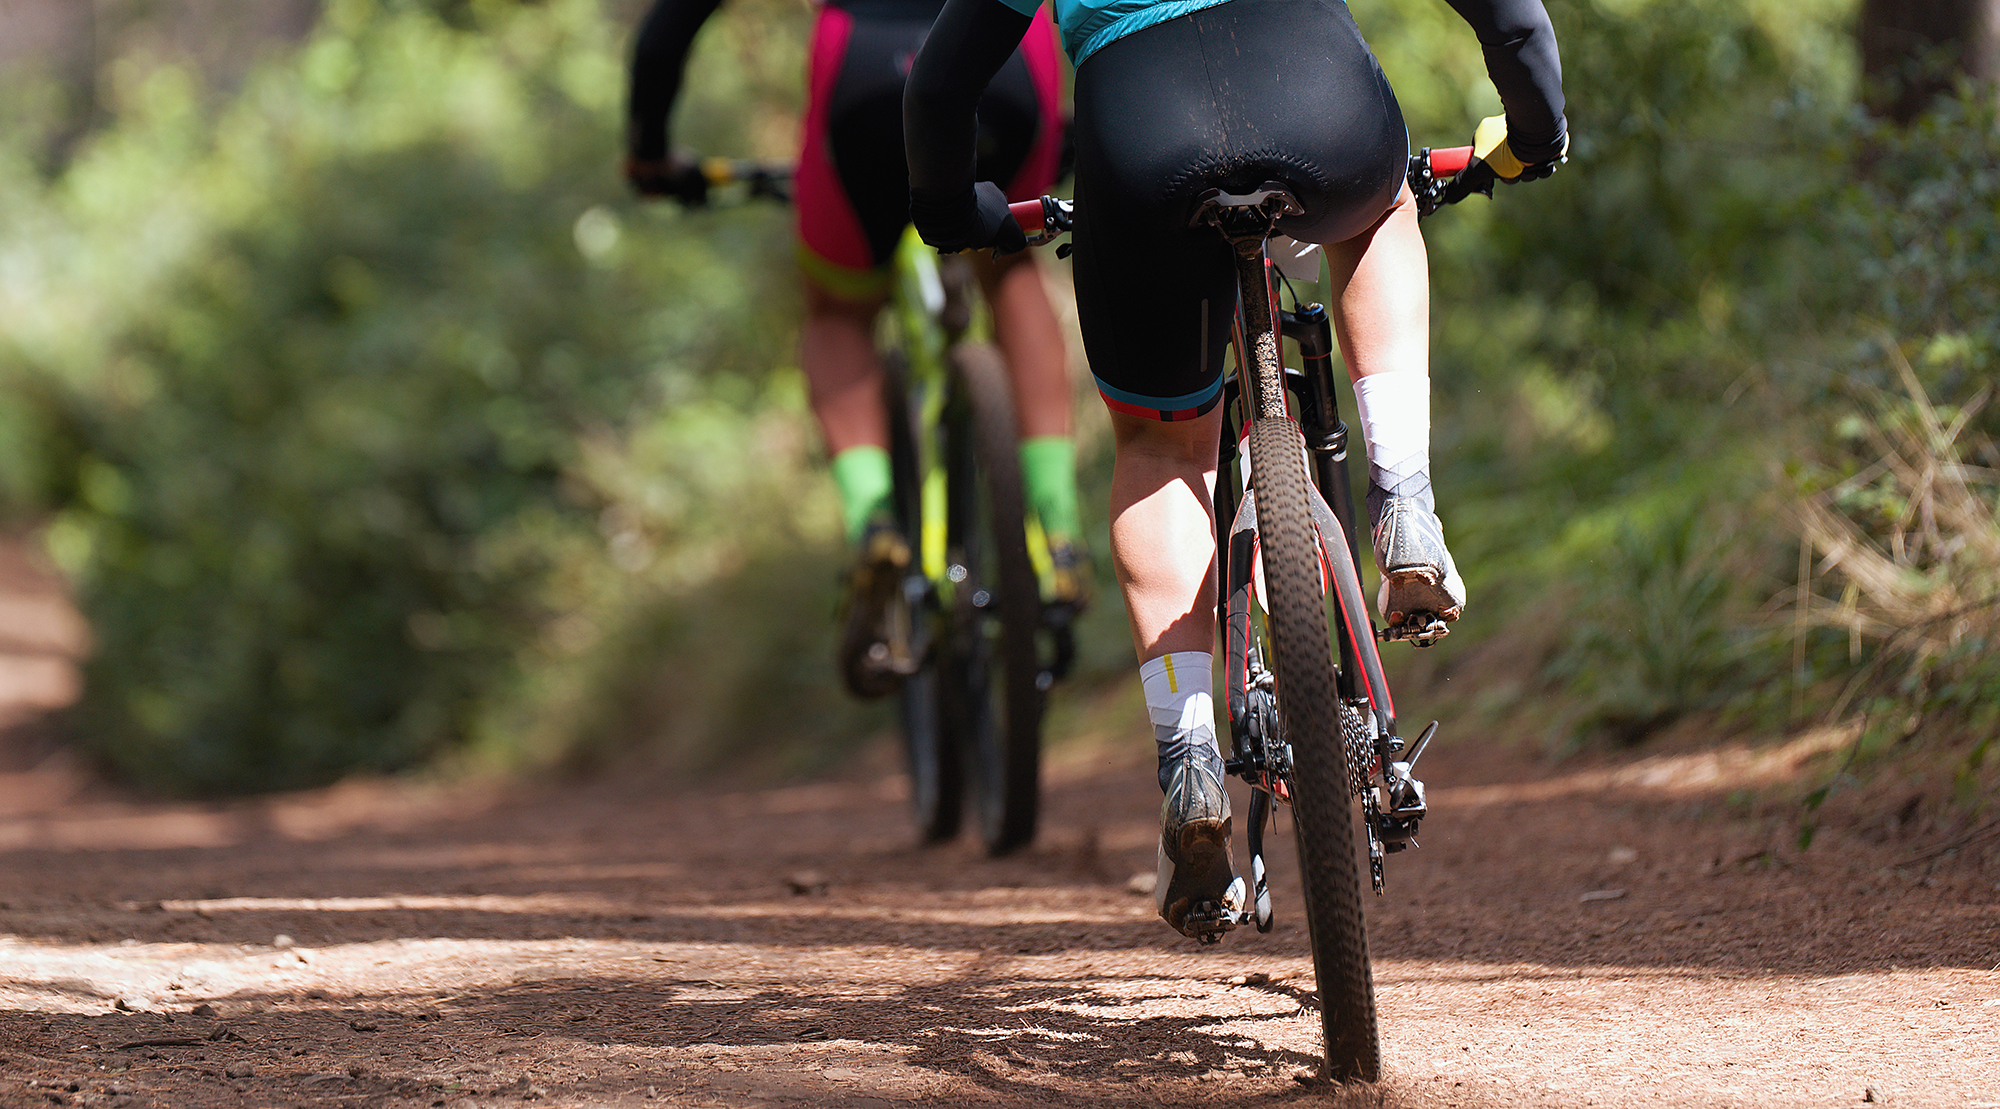 Two mountain bikers riding along a dirt trail in a forest with green shrubbery surrounding it